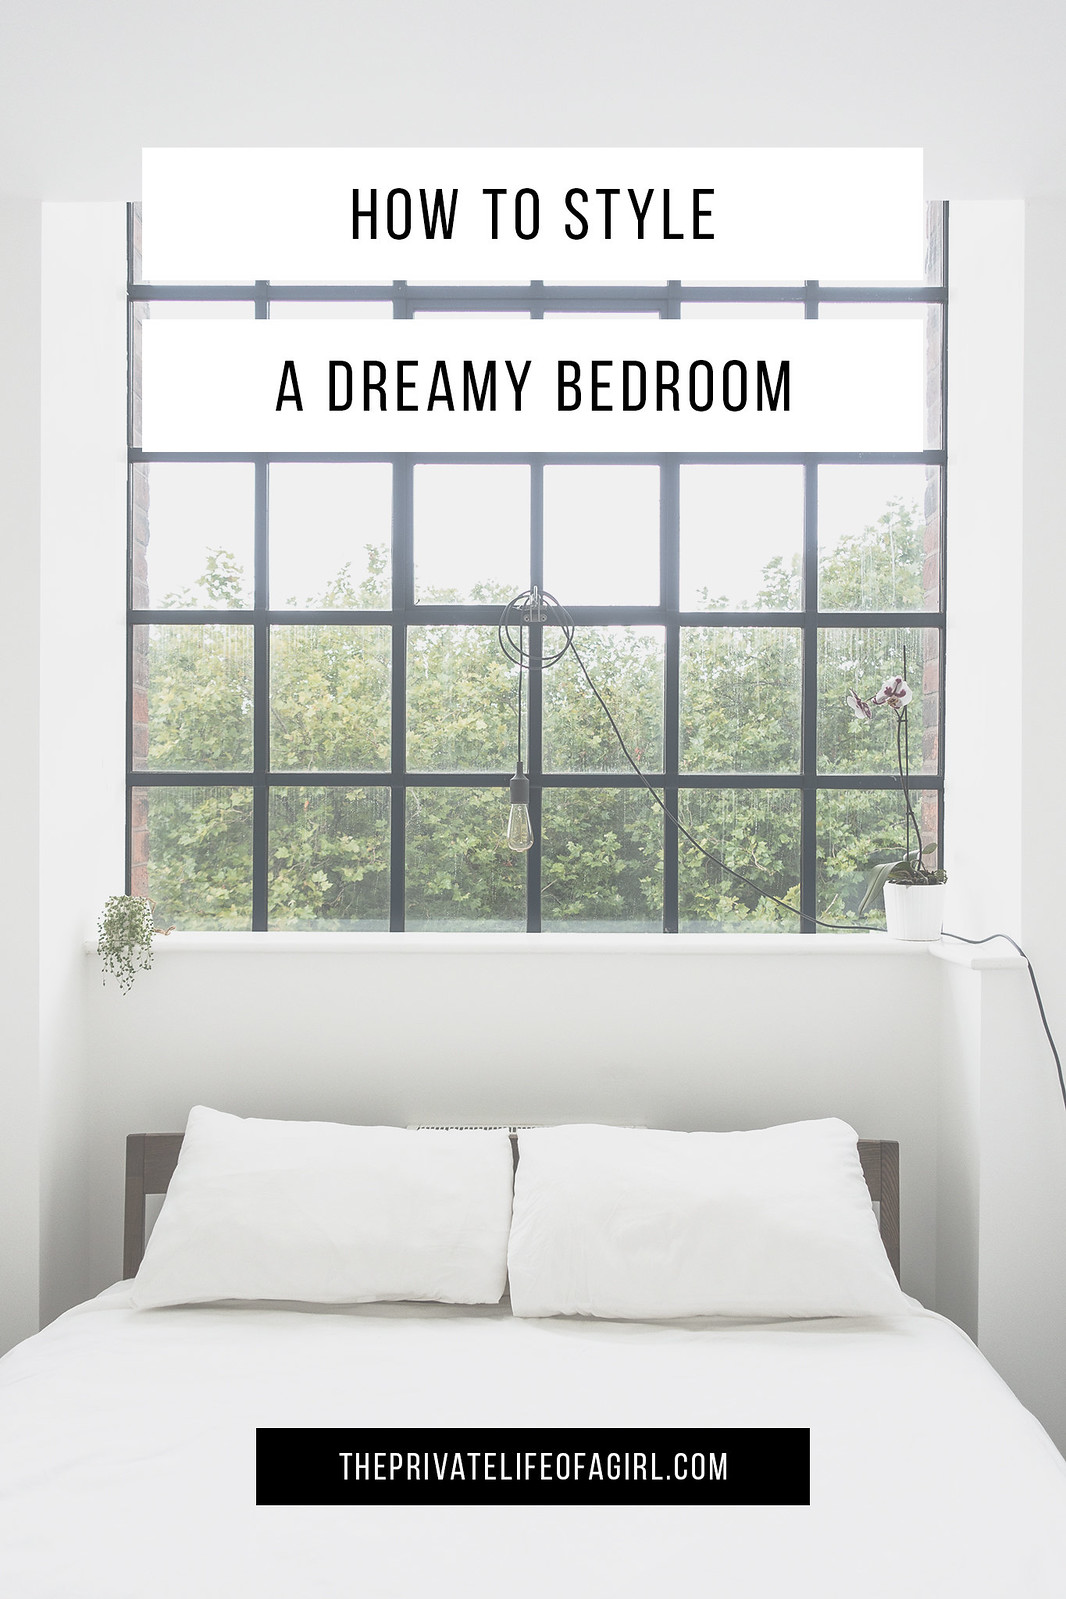 Styling A Dreamy Bedroom